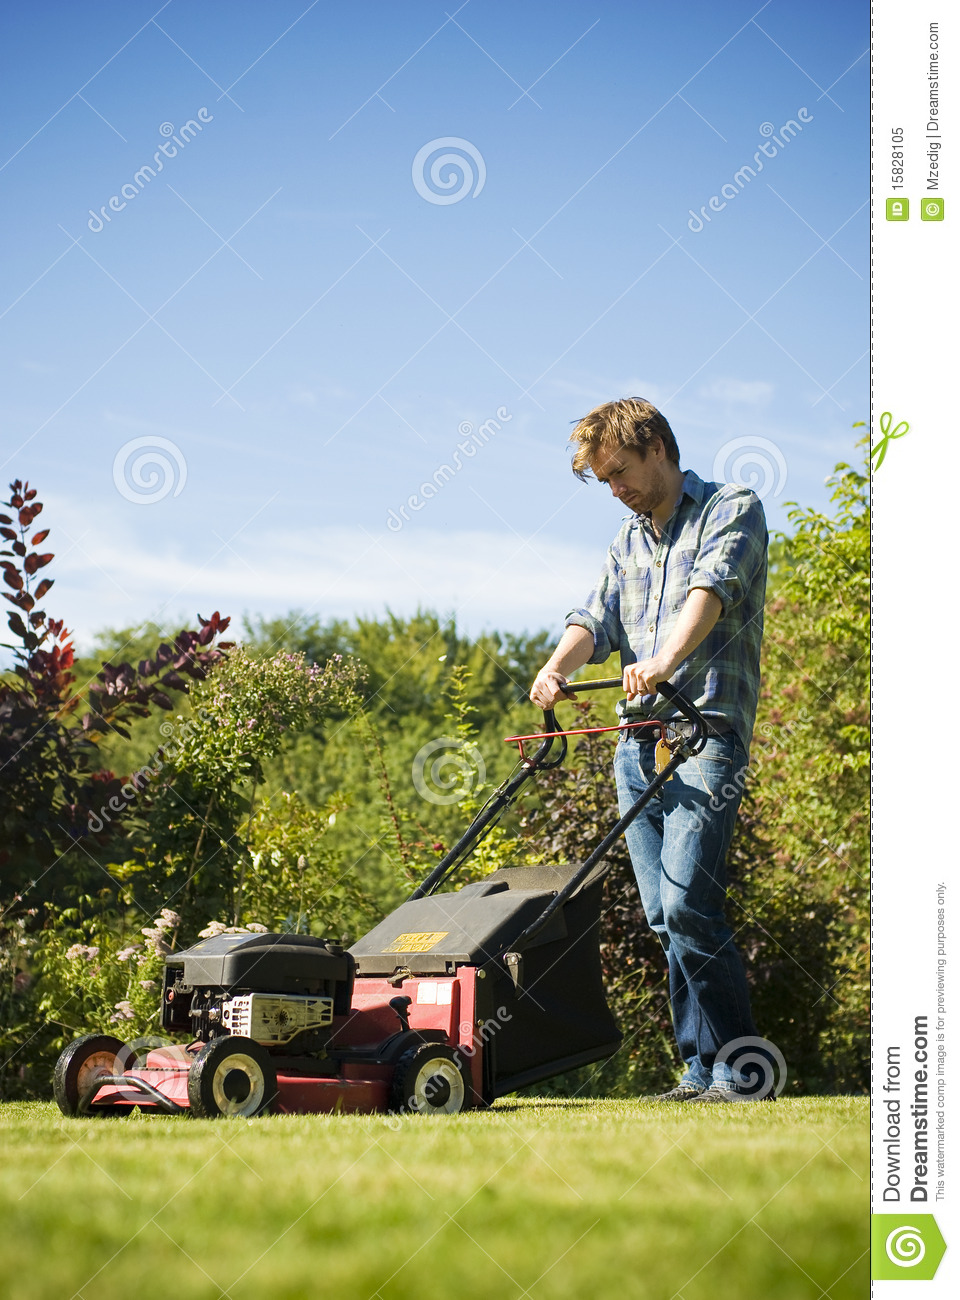 Viewing Gallery For - Man Cutting Grass